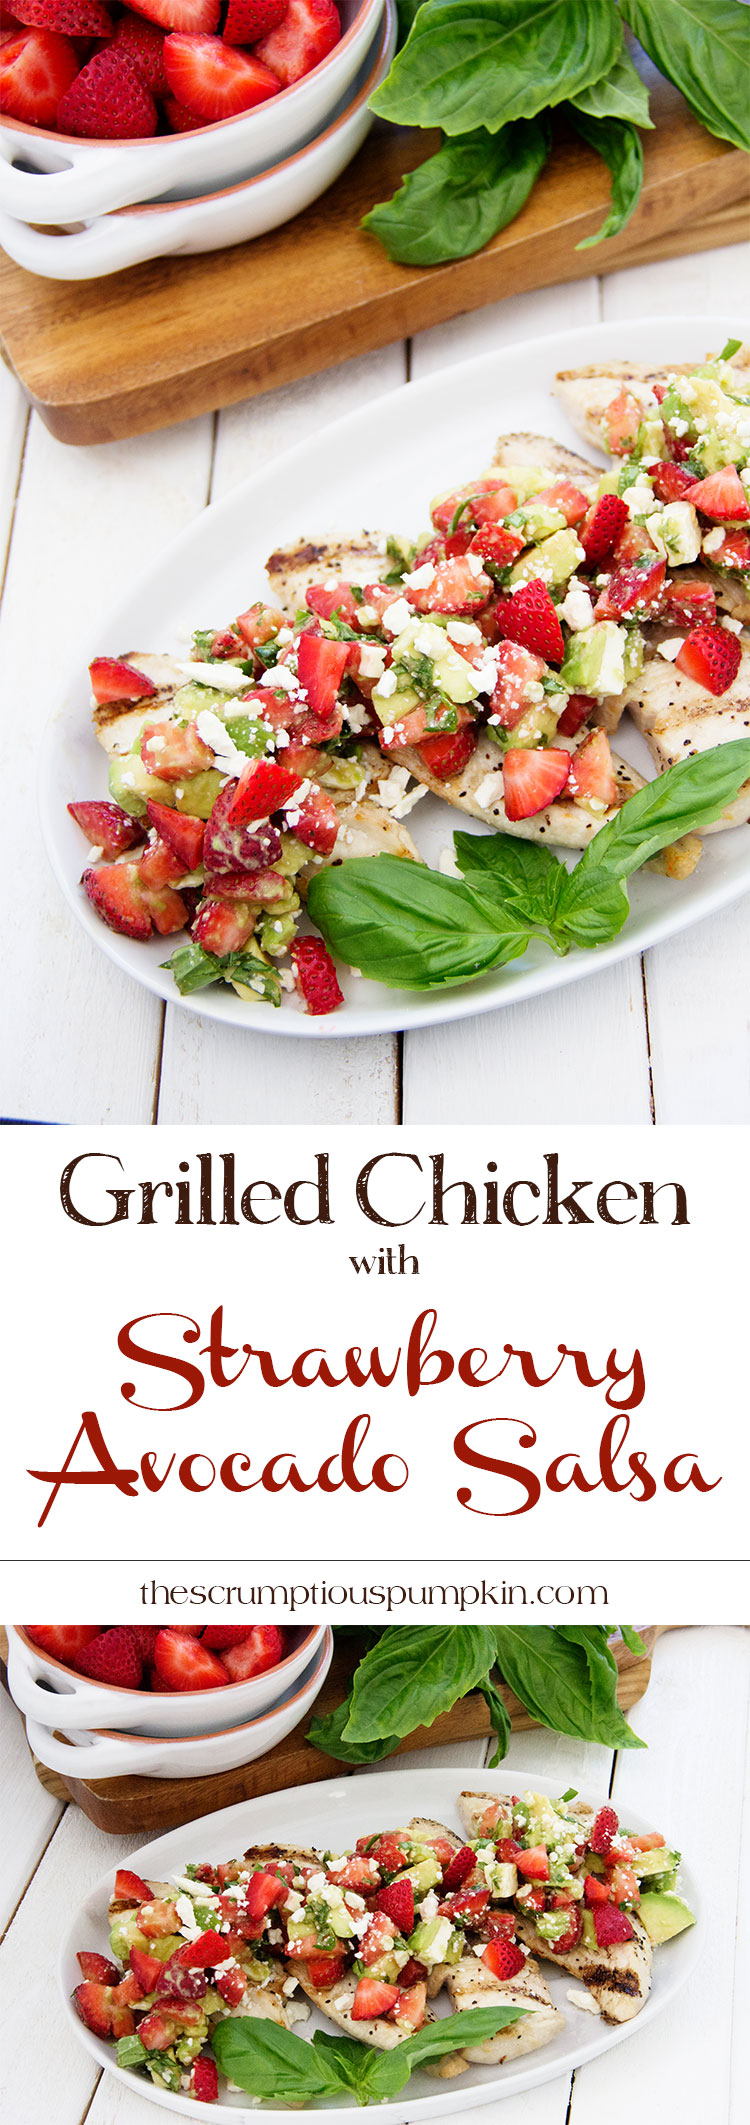 Healthy-Grilled-Chicken-with-Avocado-Strawberry-Feta-Salsa